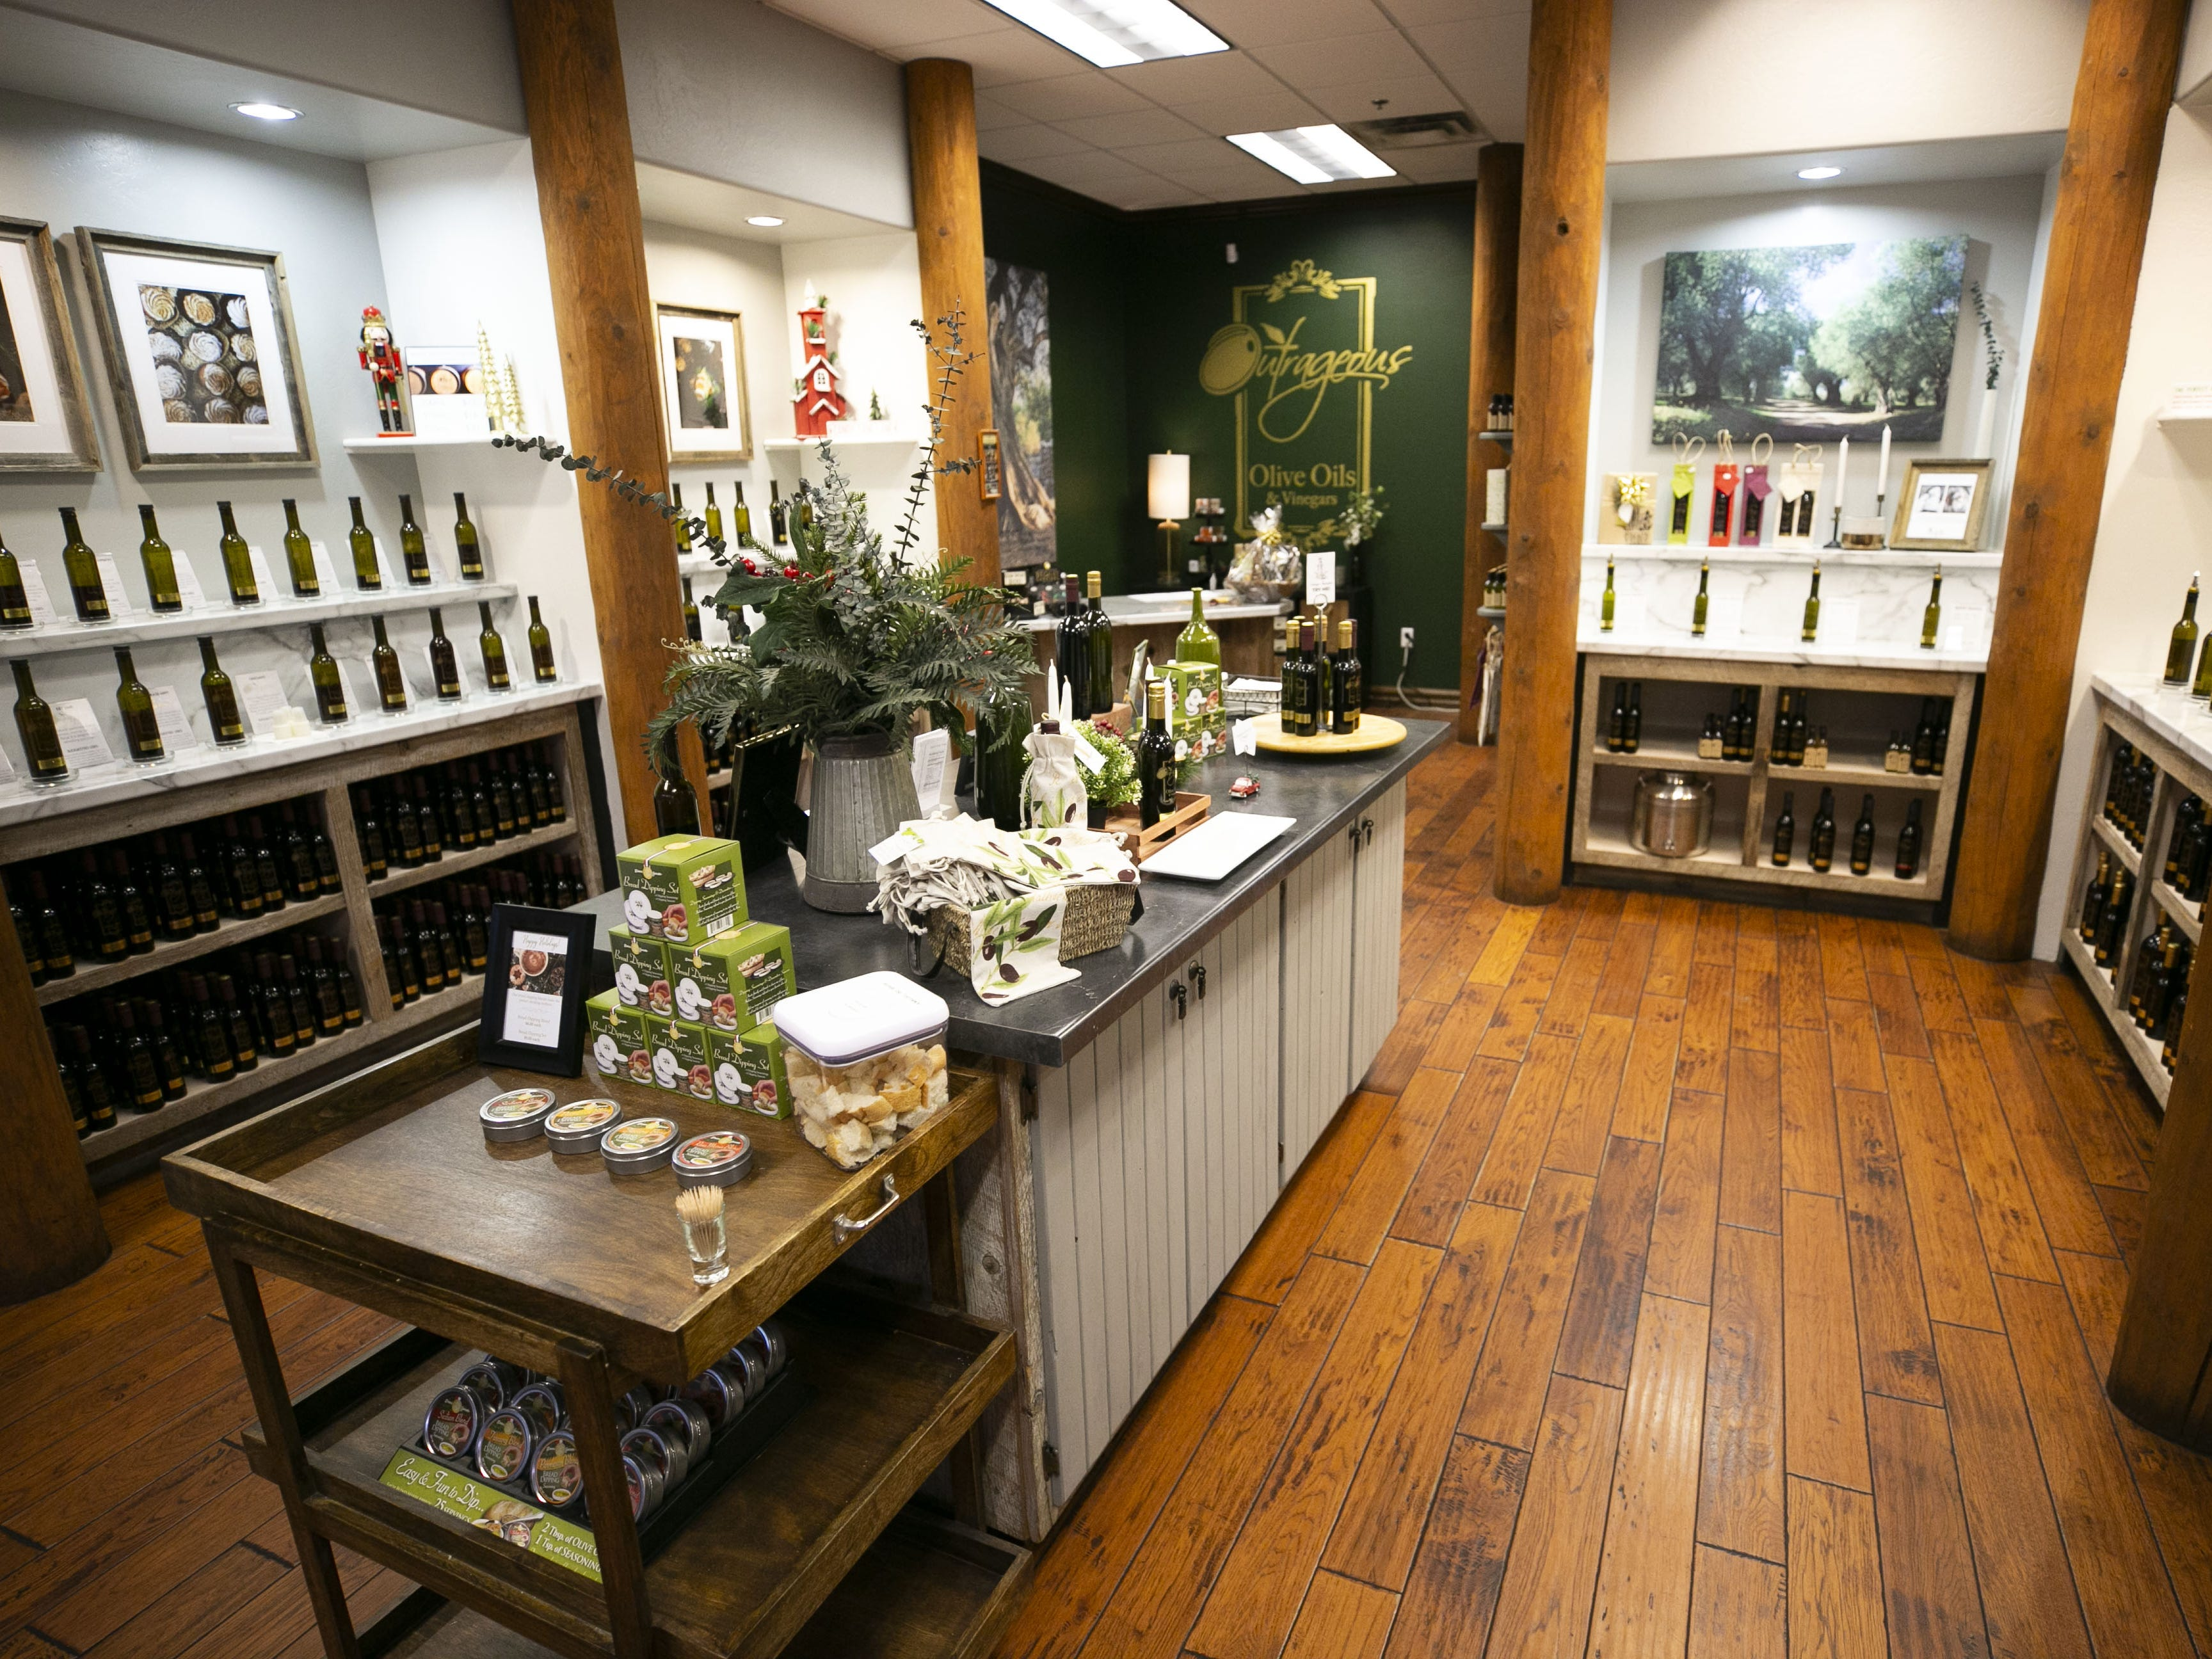 Outrageous Olive Oils & Vinegars in Old Town Scottsdale on Tuesday, Dec. 11, 2018. The shop is owned by former child actor, Frankie Muniz and his fiance Paige Price.